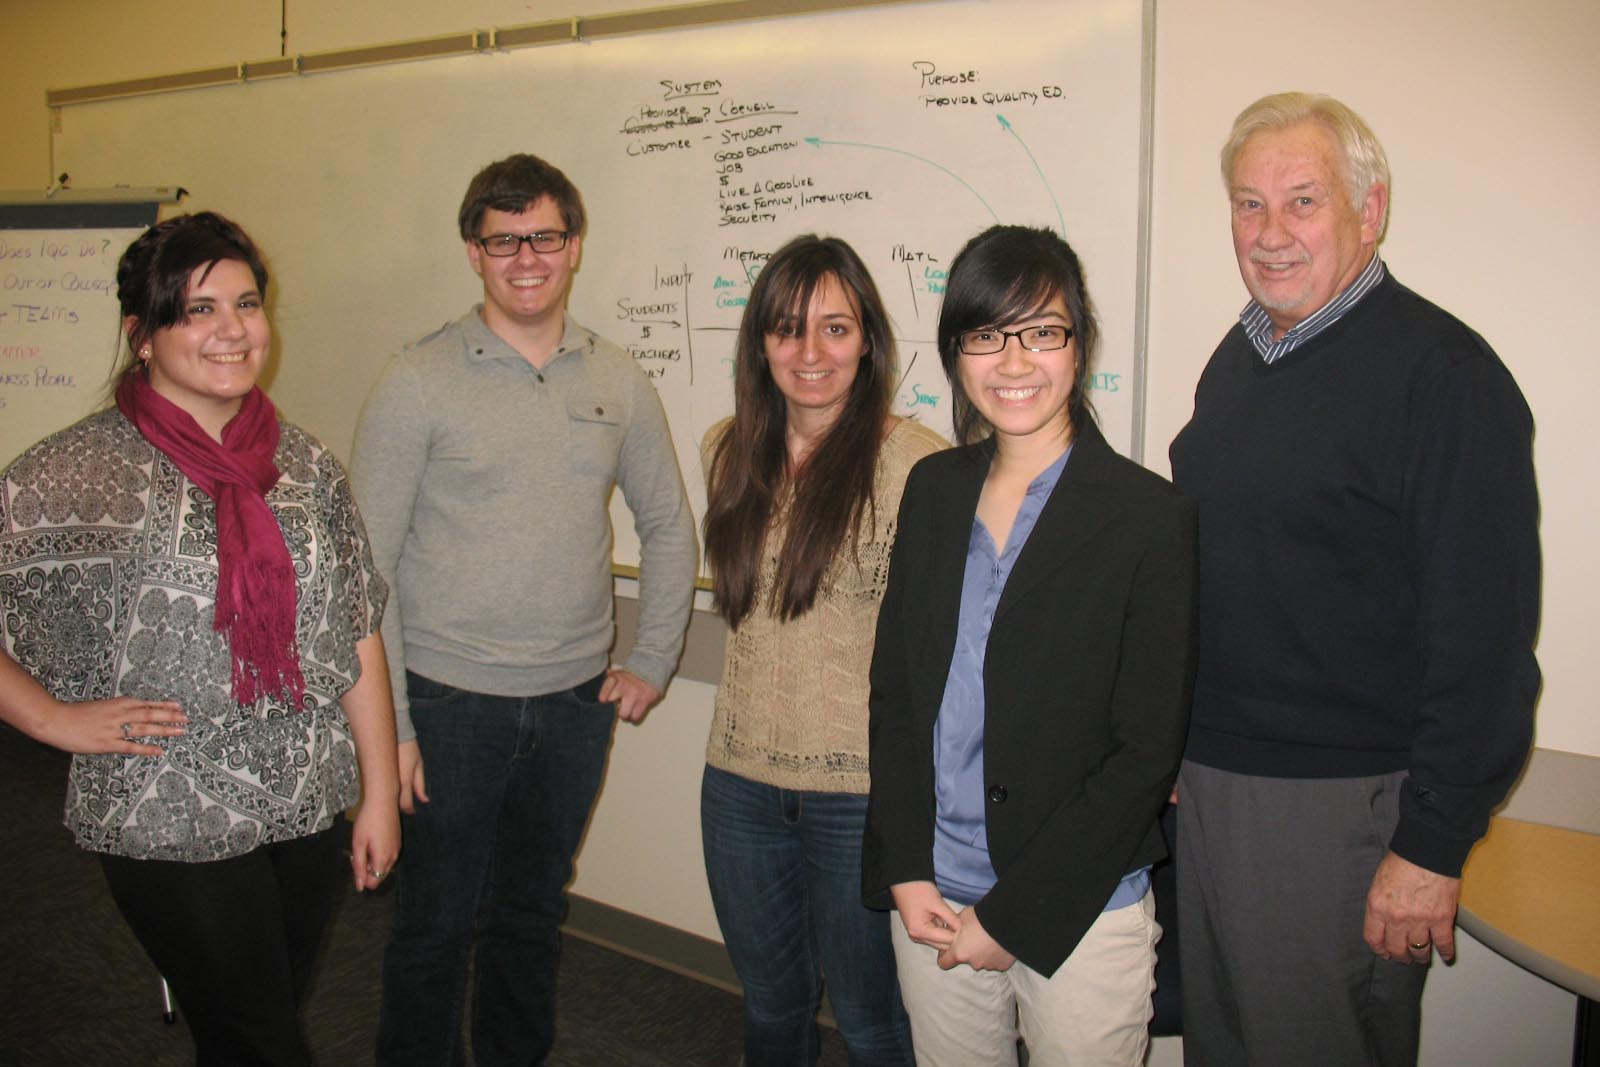 Gary Nesteby (right) with Cornell College students.